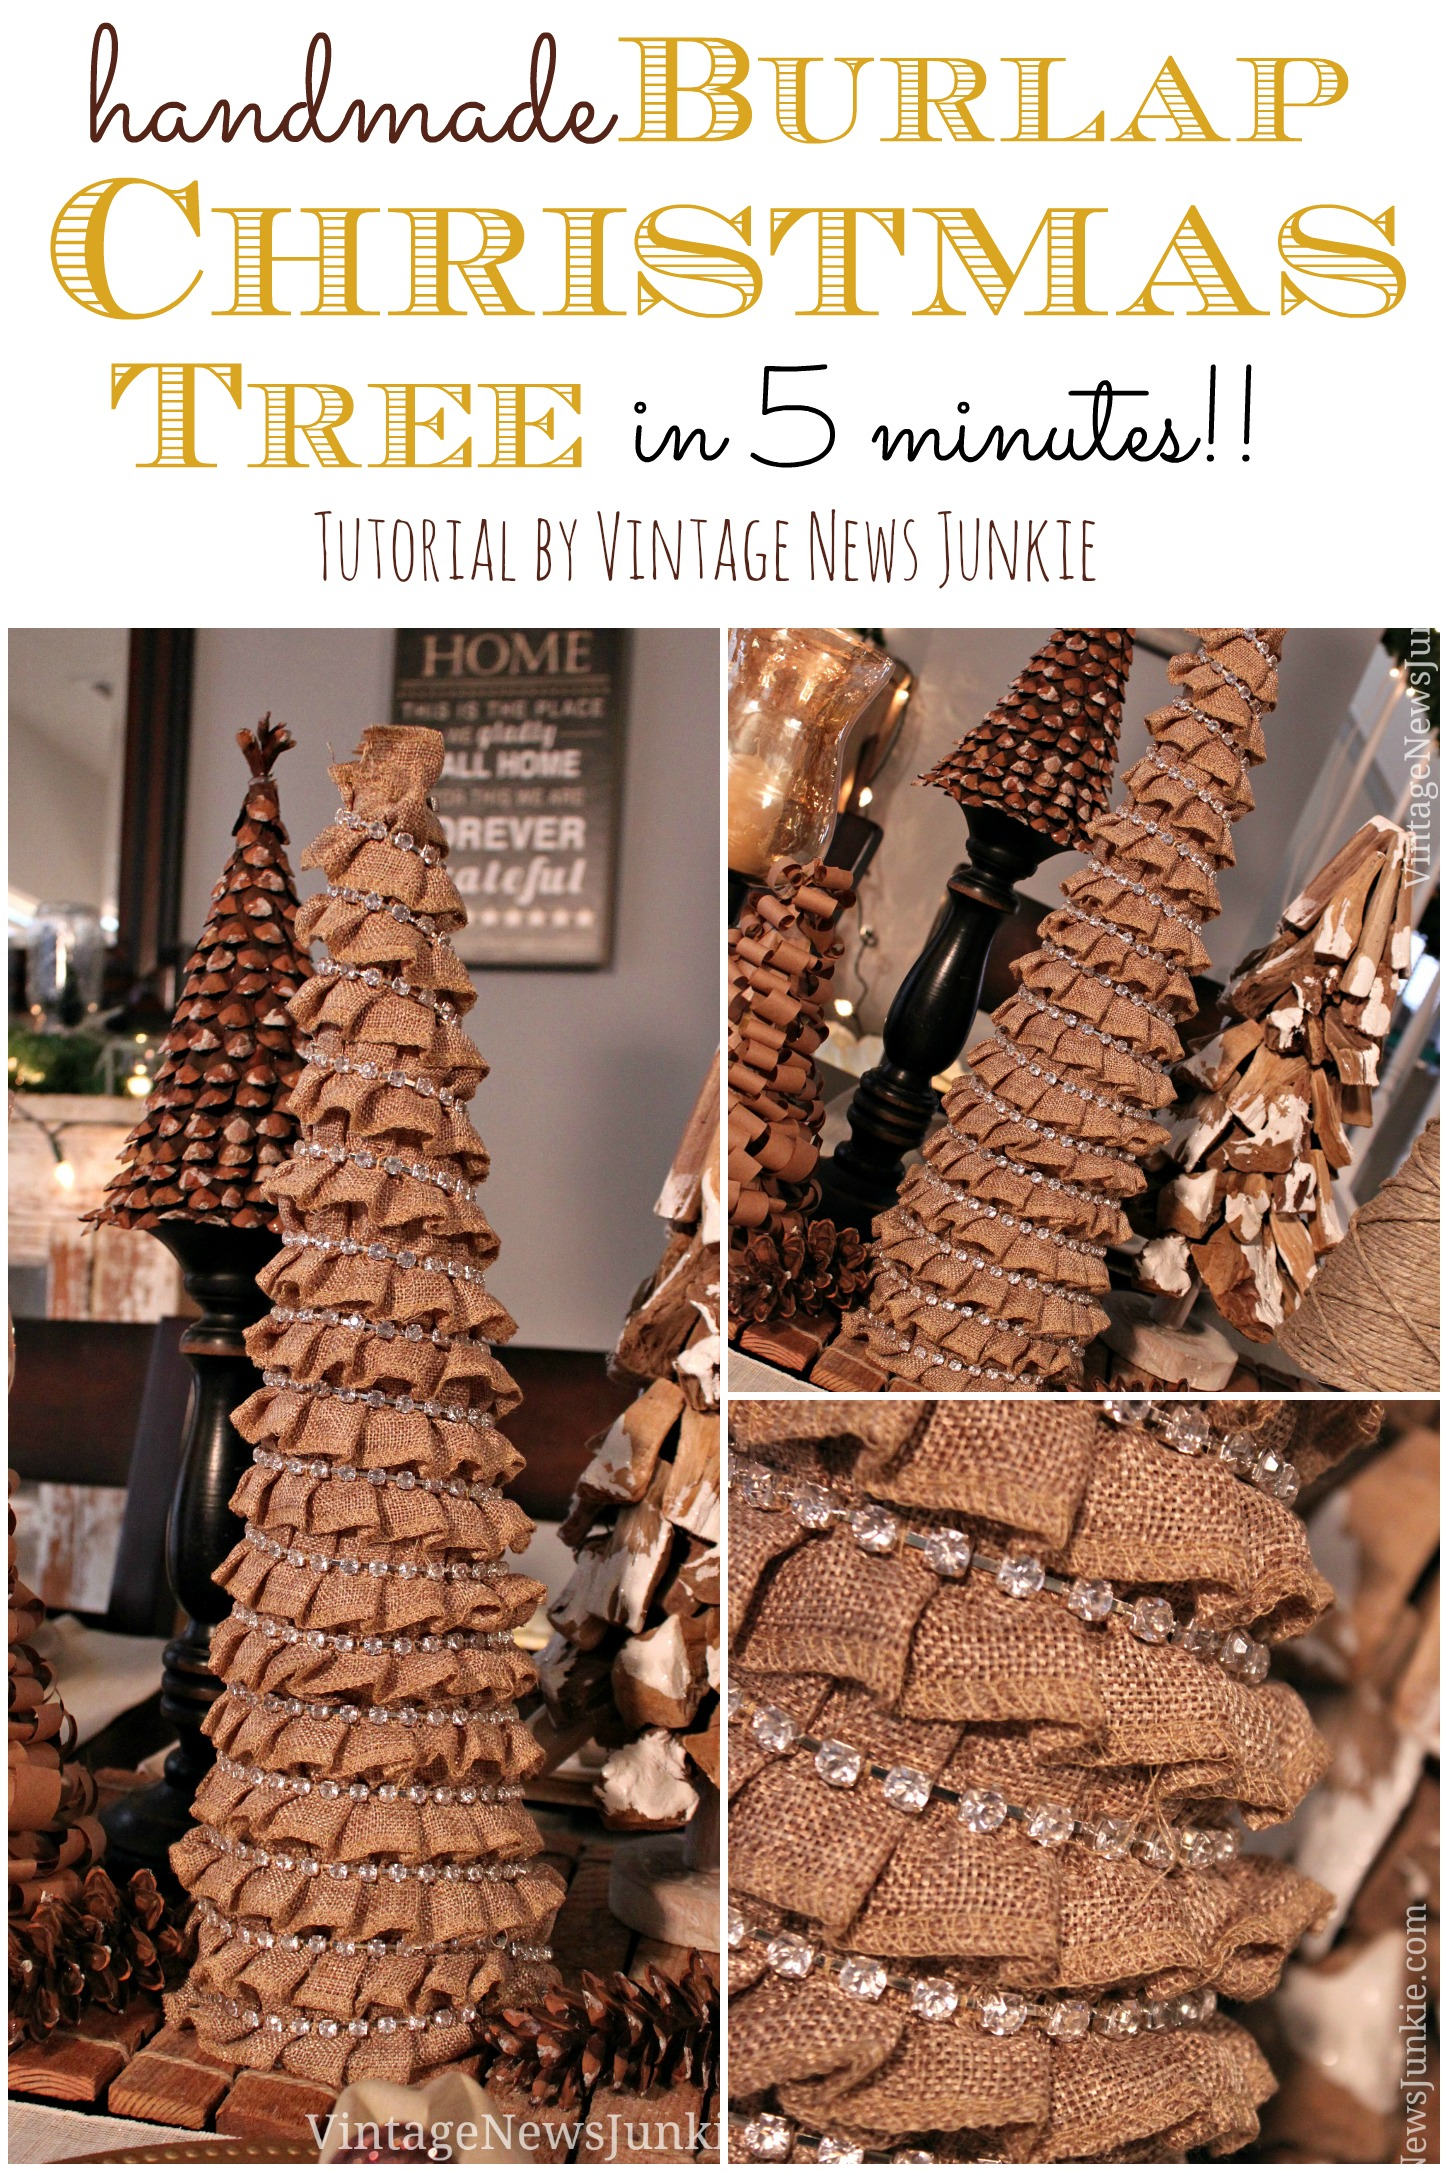 How To Make a Burlap Christmas Tree in Five Minutes